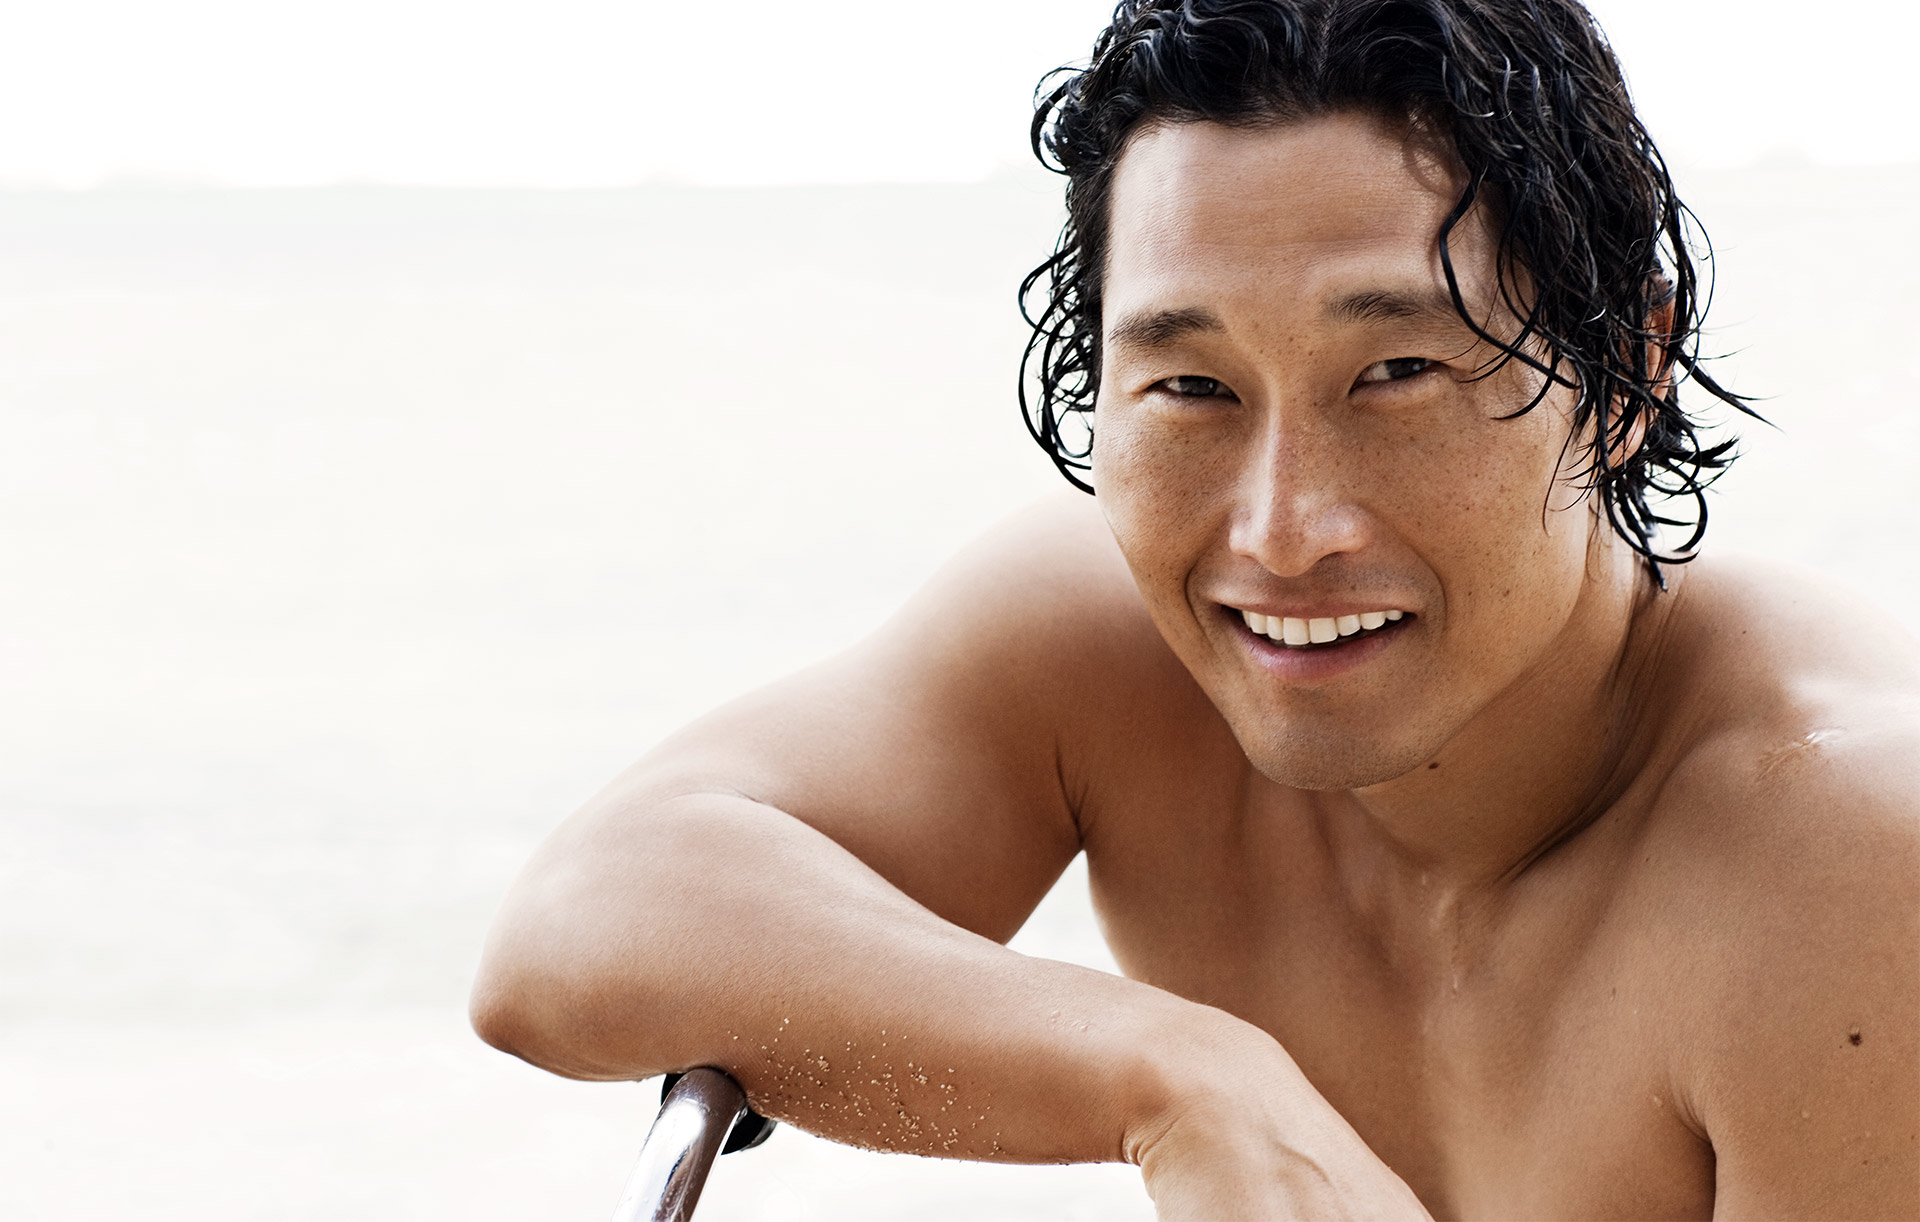 Daniel Dae Kim Nude And Sexy Underwear Collection